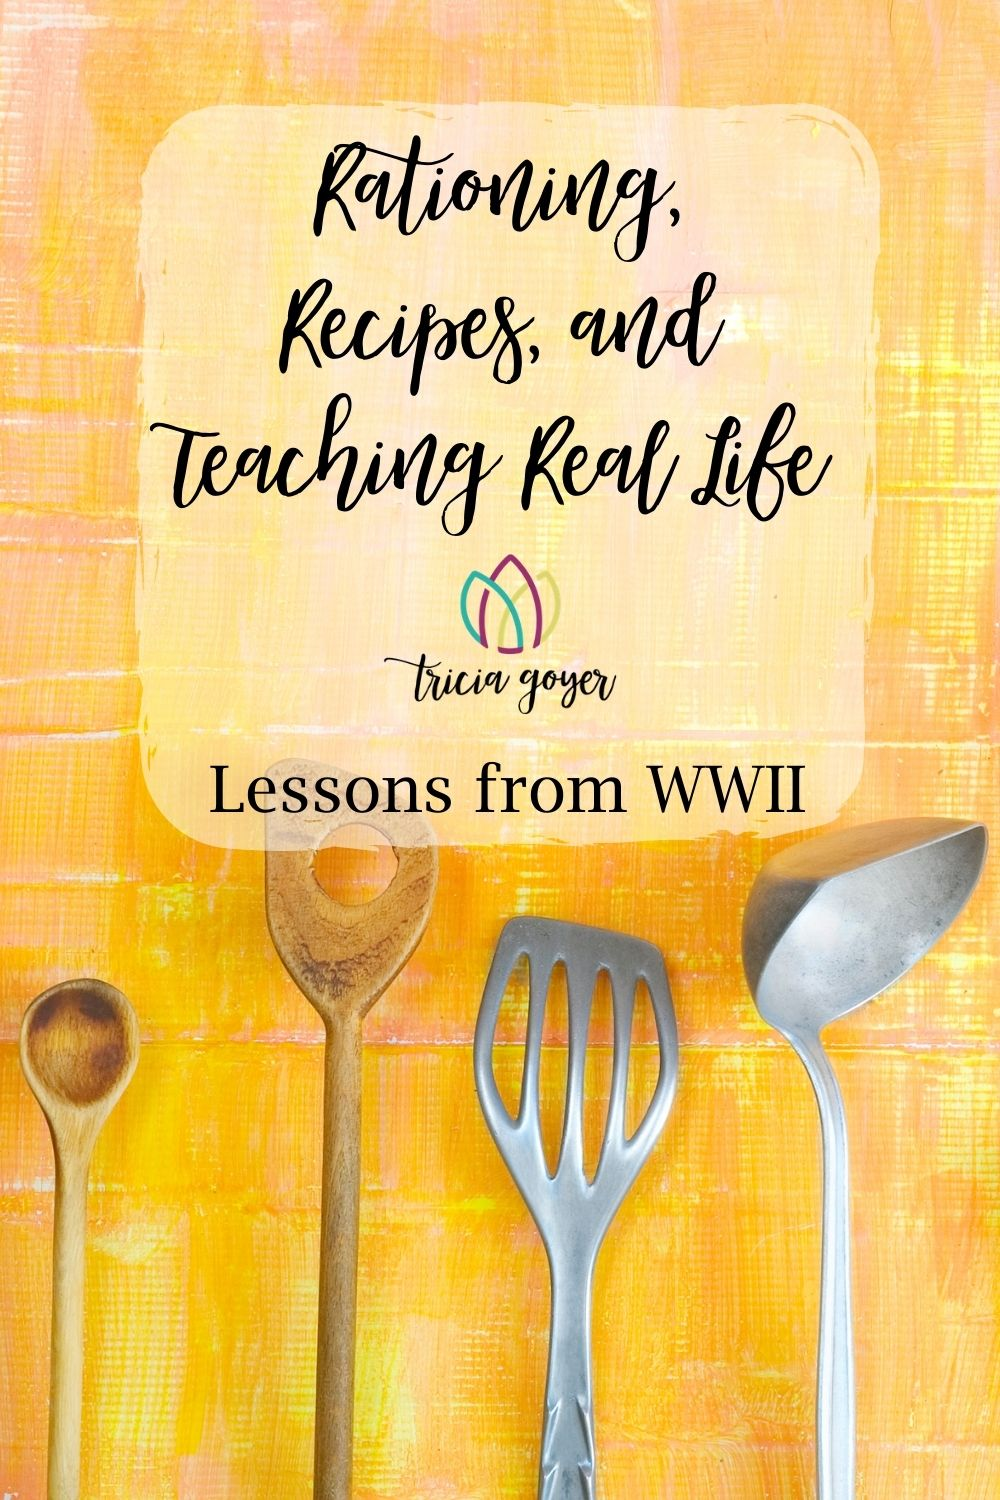 Rationing, Recipes, and Teaching Real Life. There're many ways to teach children. Learning about WWII rationing at the store is just 1 idea. Check out Tricia's blog post for more and FREE RECIPE PRINTABLES and WWII Ration Card.